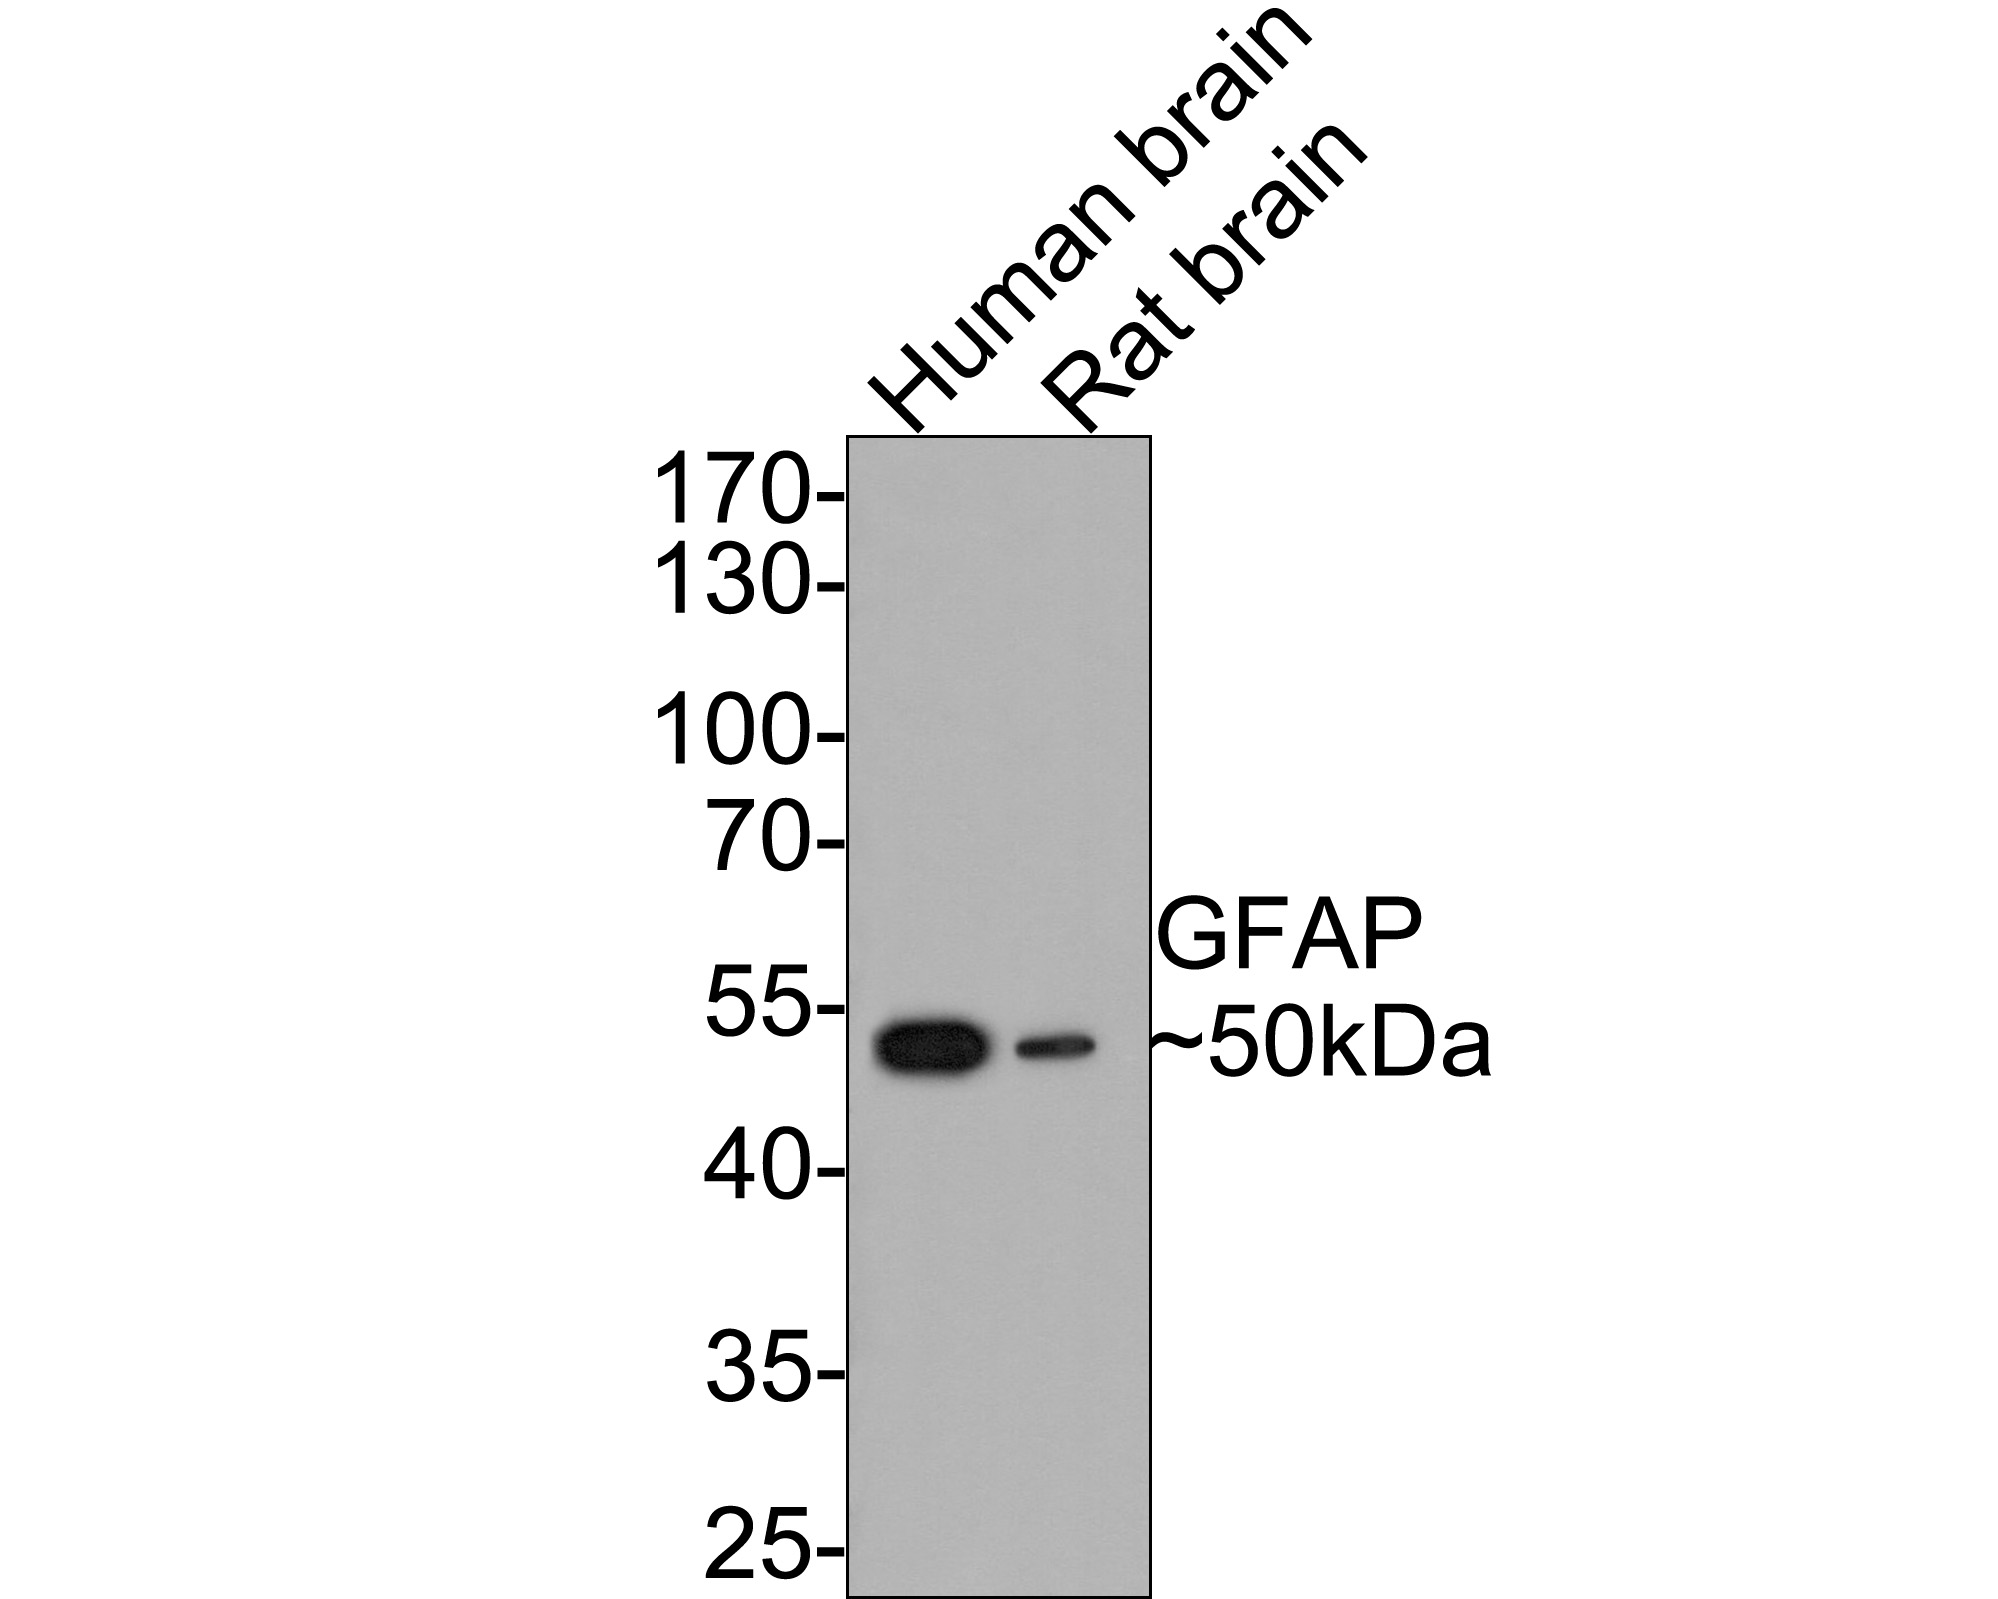 Western blot analysis of GFAP on rat brain tissue lysates. Proteins were transferred to a PVDF membrane and blocked with 5% BSA in PBS for 1 hour at room temperature. The primary antibody (ET1601-23, 1/500) was used in 5% BSA at room temperature for 2 hours. Goat Anti-Rabbit IgG - HRP Secondary Antibody (HA1001) at 1:5,000 dilution was used for 1 hour at room temperature.